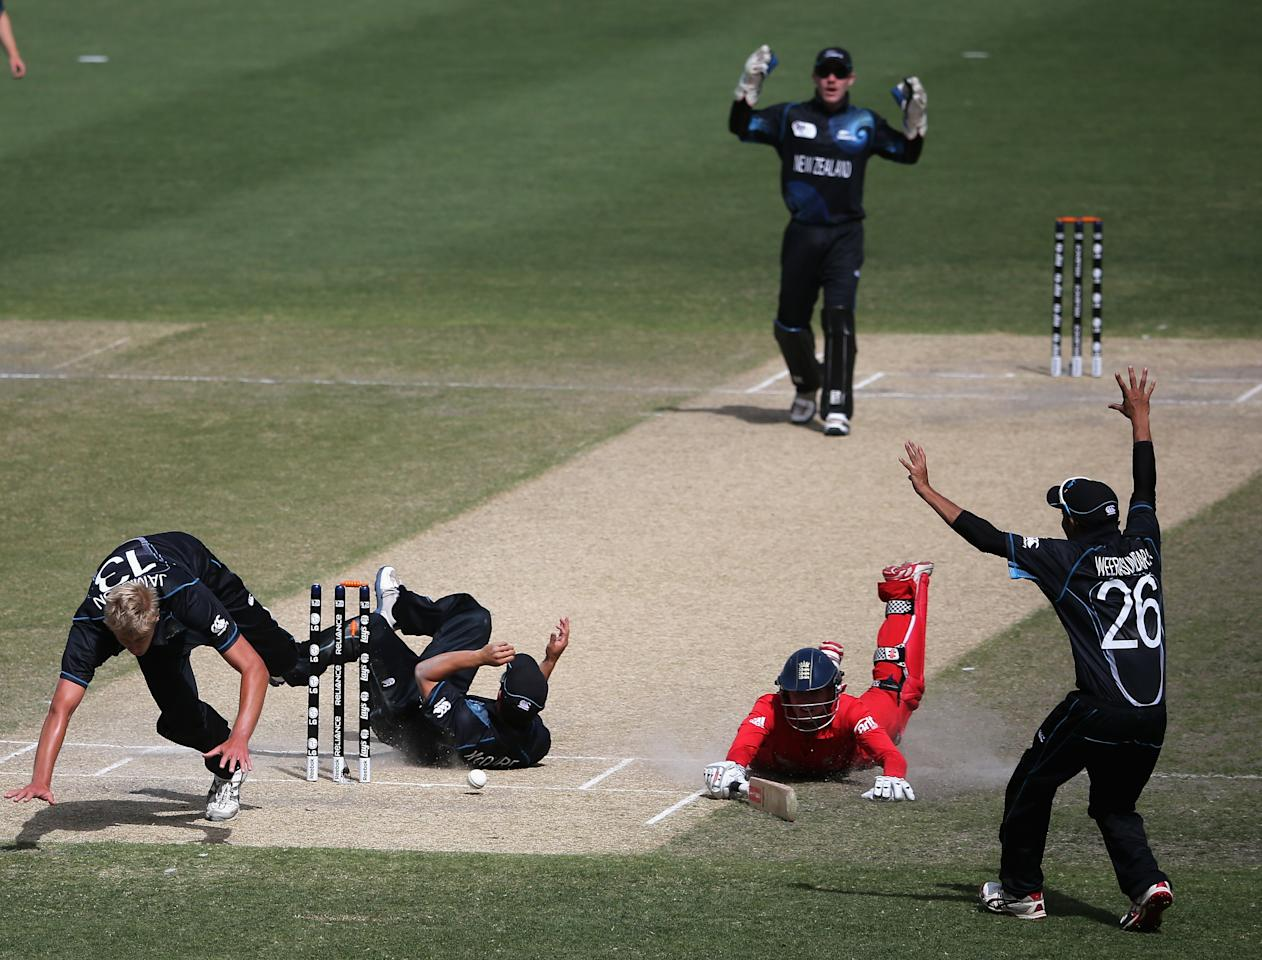 DUBAI, UNITED ARAB EMIRATES - FEBRUARY 18:  Players of New Zealand celebrate after dismissing Ed Barnard of England during the ICC U19 Cricket World Cup 2014 match between England and New Zealand at the Dubai Sports City Cricket Stadium on February 18, 2014 in Dubai, United Arab Emirates.  (Photo by Francois Nel - IDI/IDI via Getty Images)